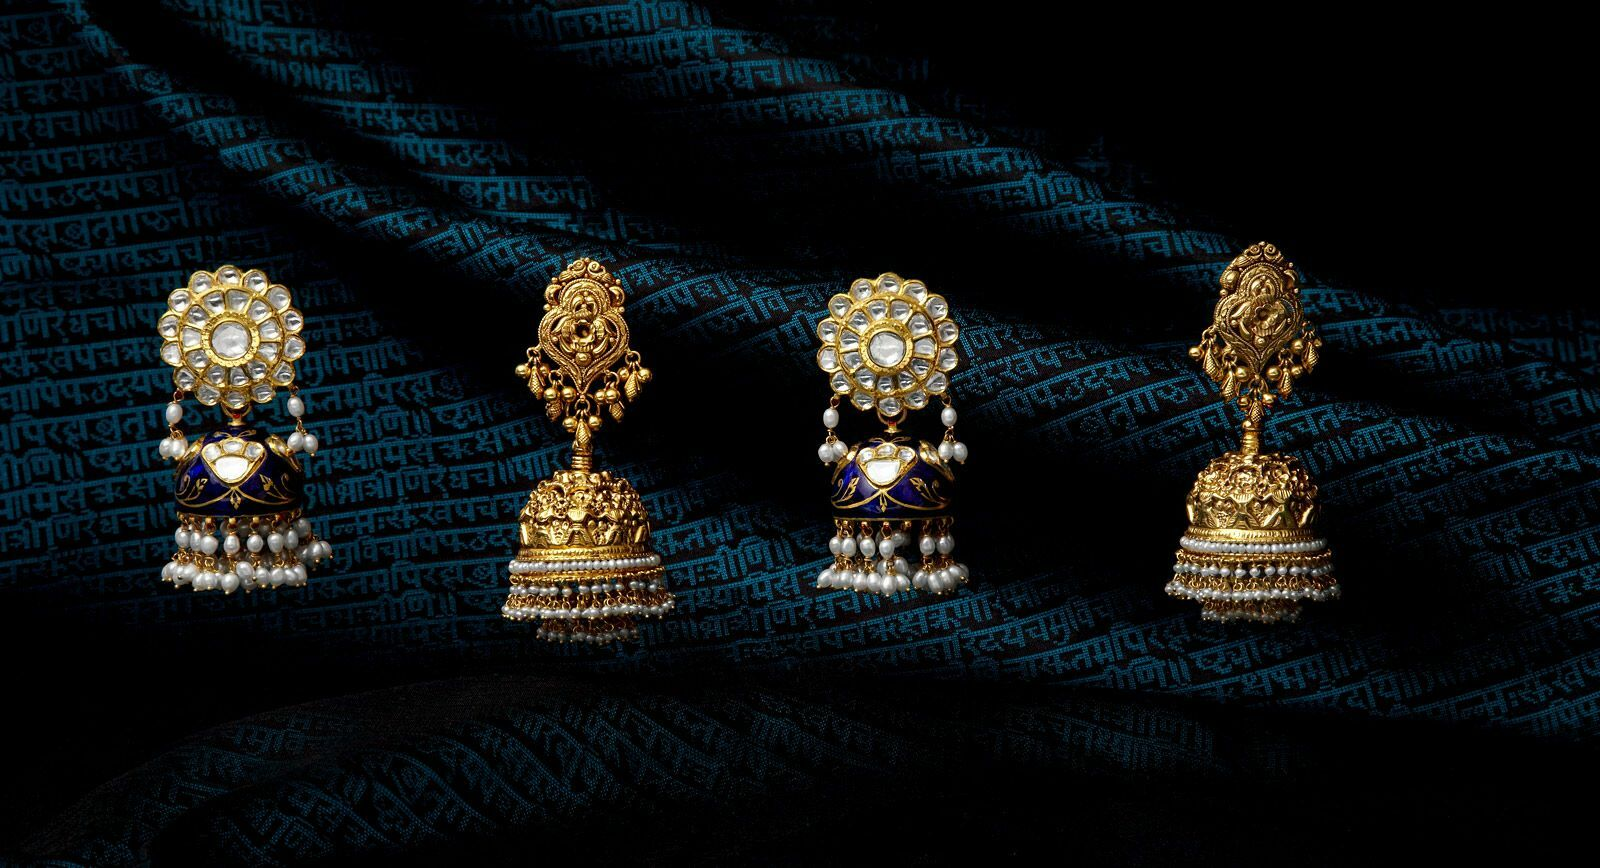 Warp'n Weft and Jaipur Gems come together to celebrate design, craftsmanship and a rich heritage